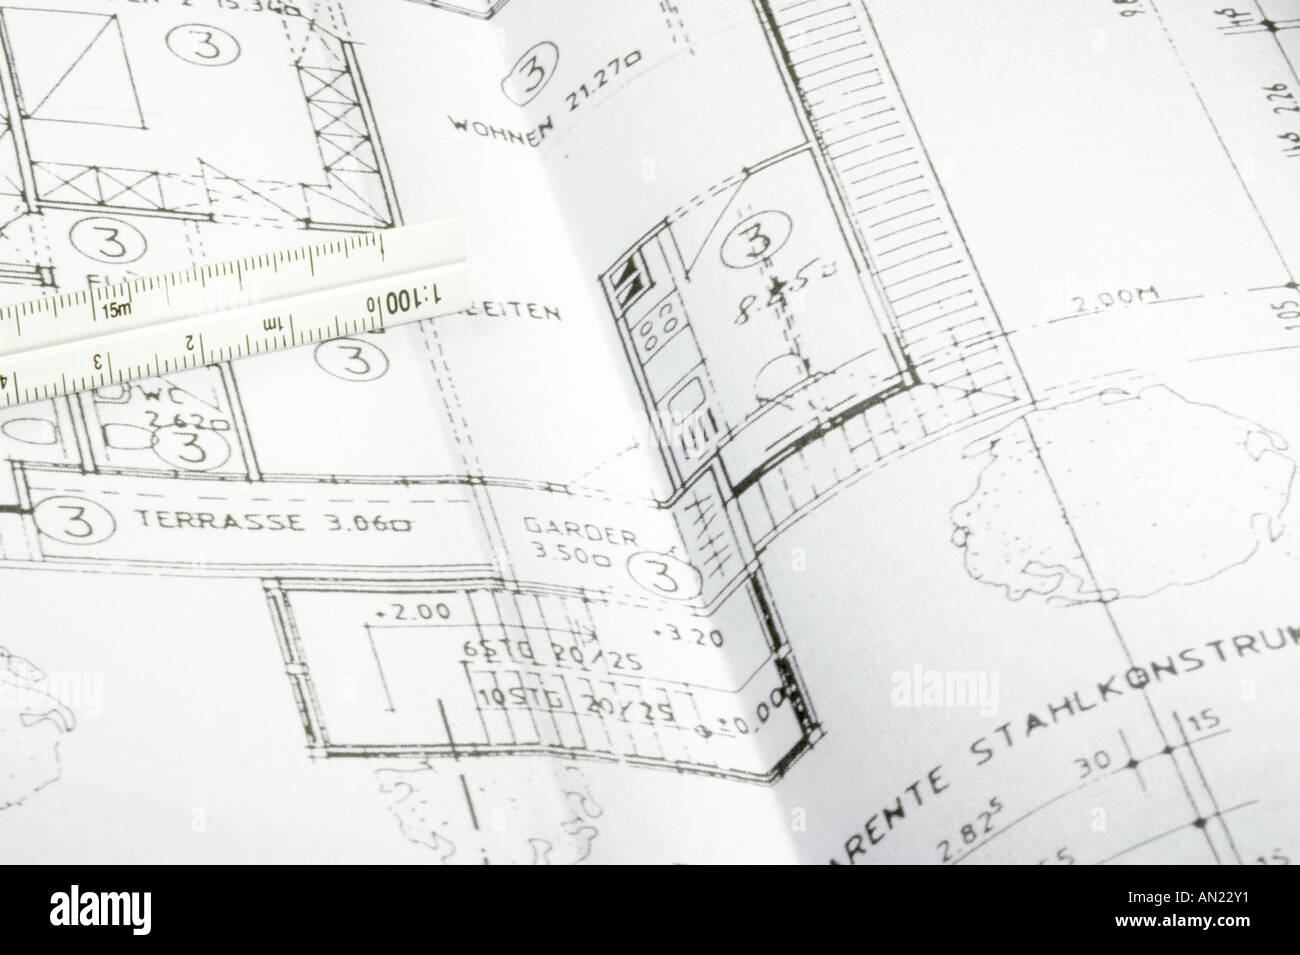 cad blueprint of a house ruler lying on the plan stock photo